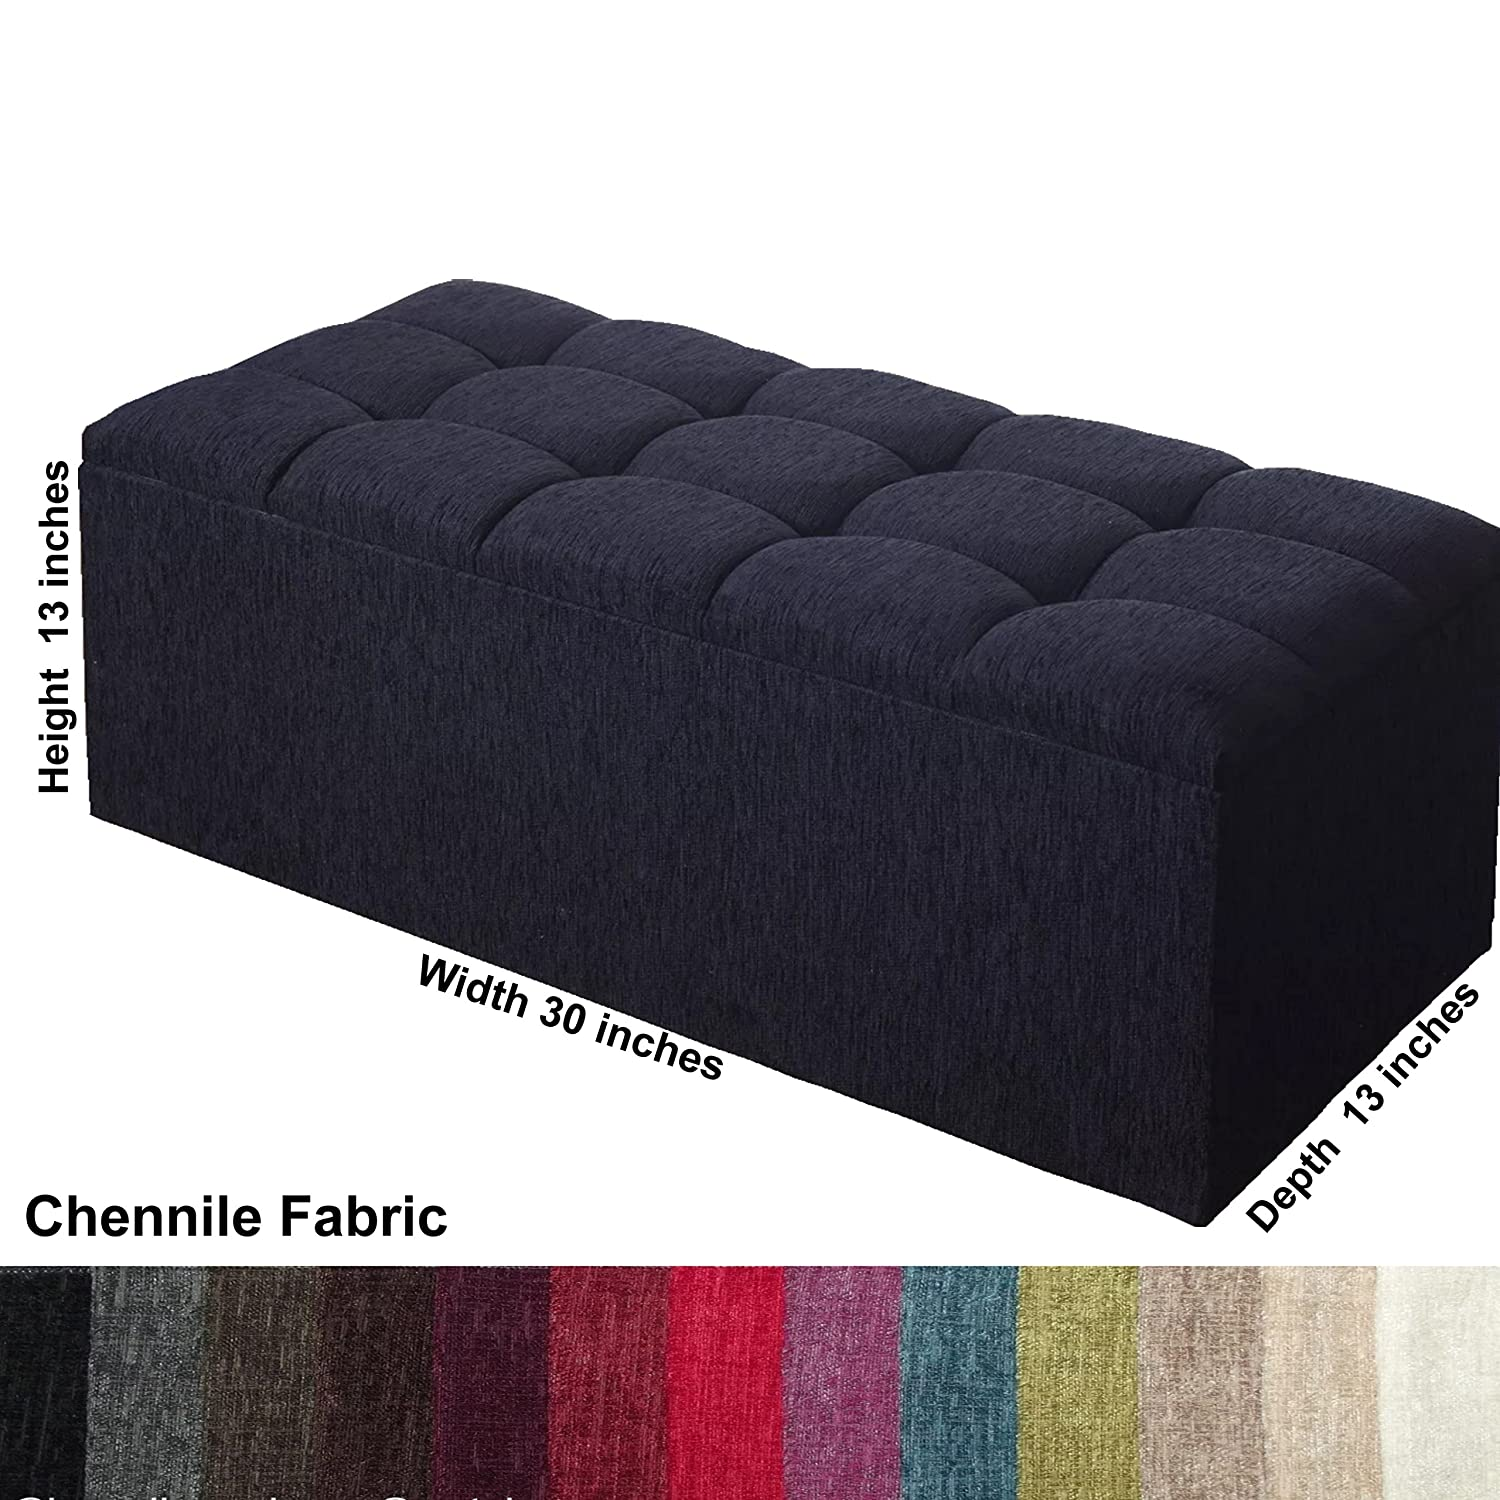 Toy Box Ottoman In  Chennile Fabric  /& Ideal Storage and Seating Solution